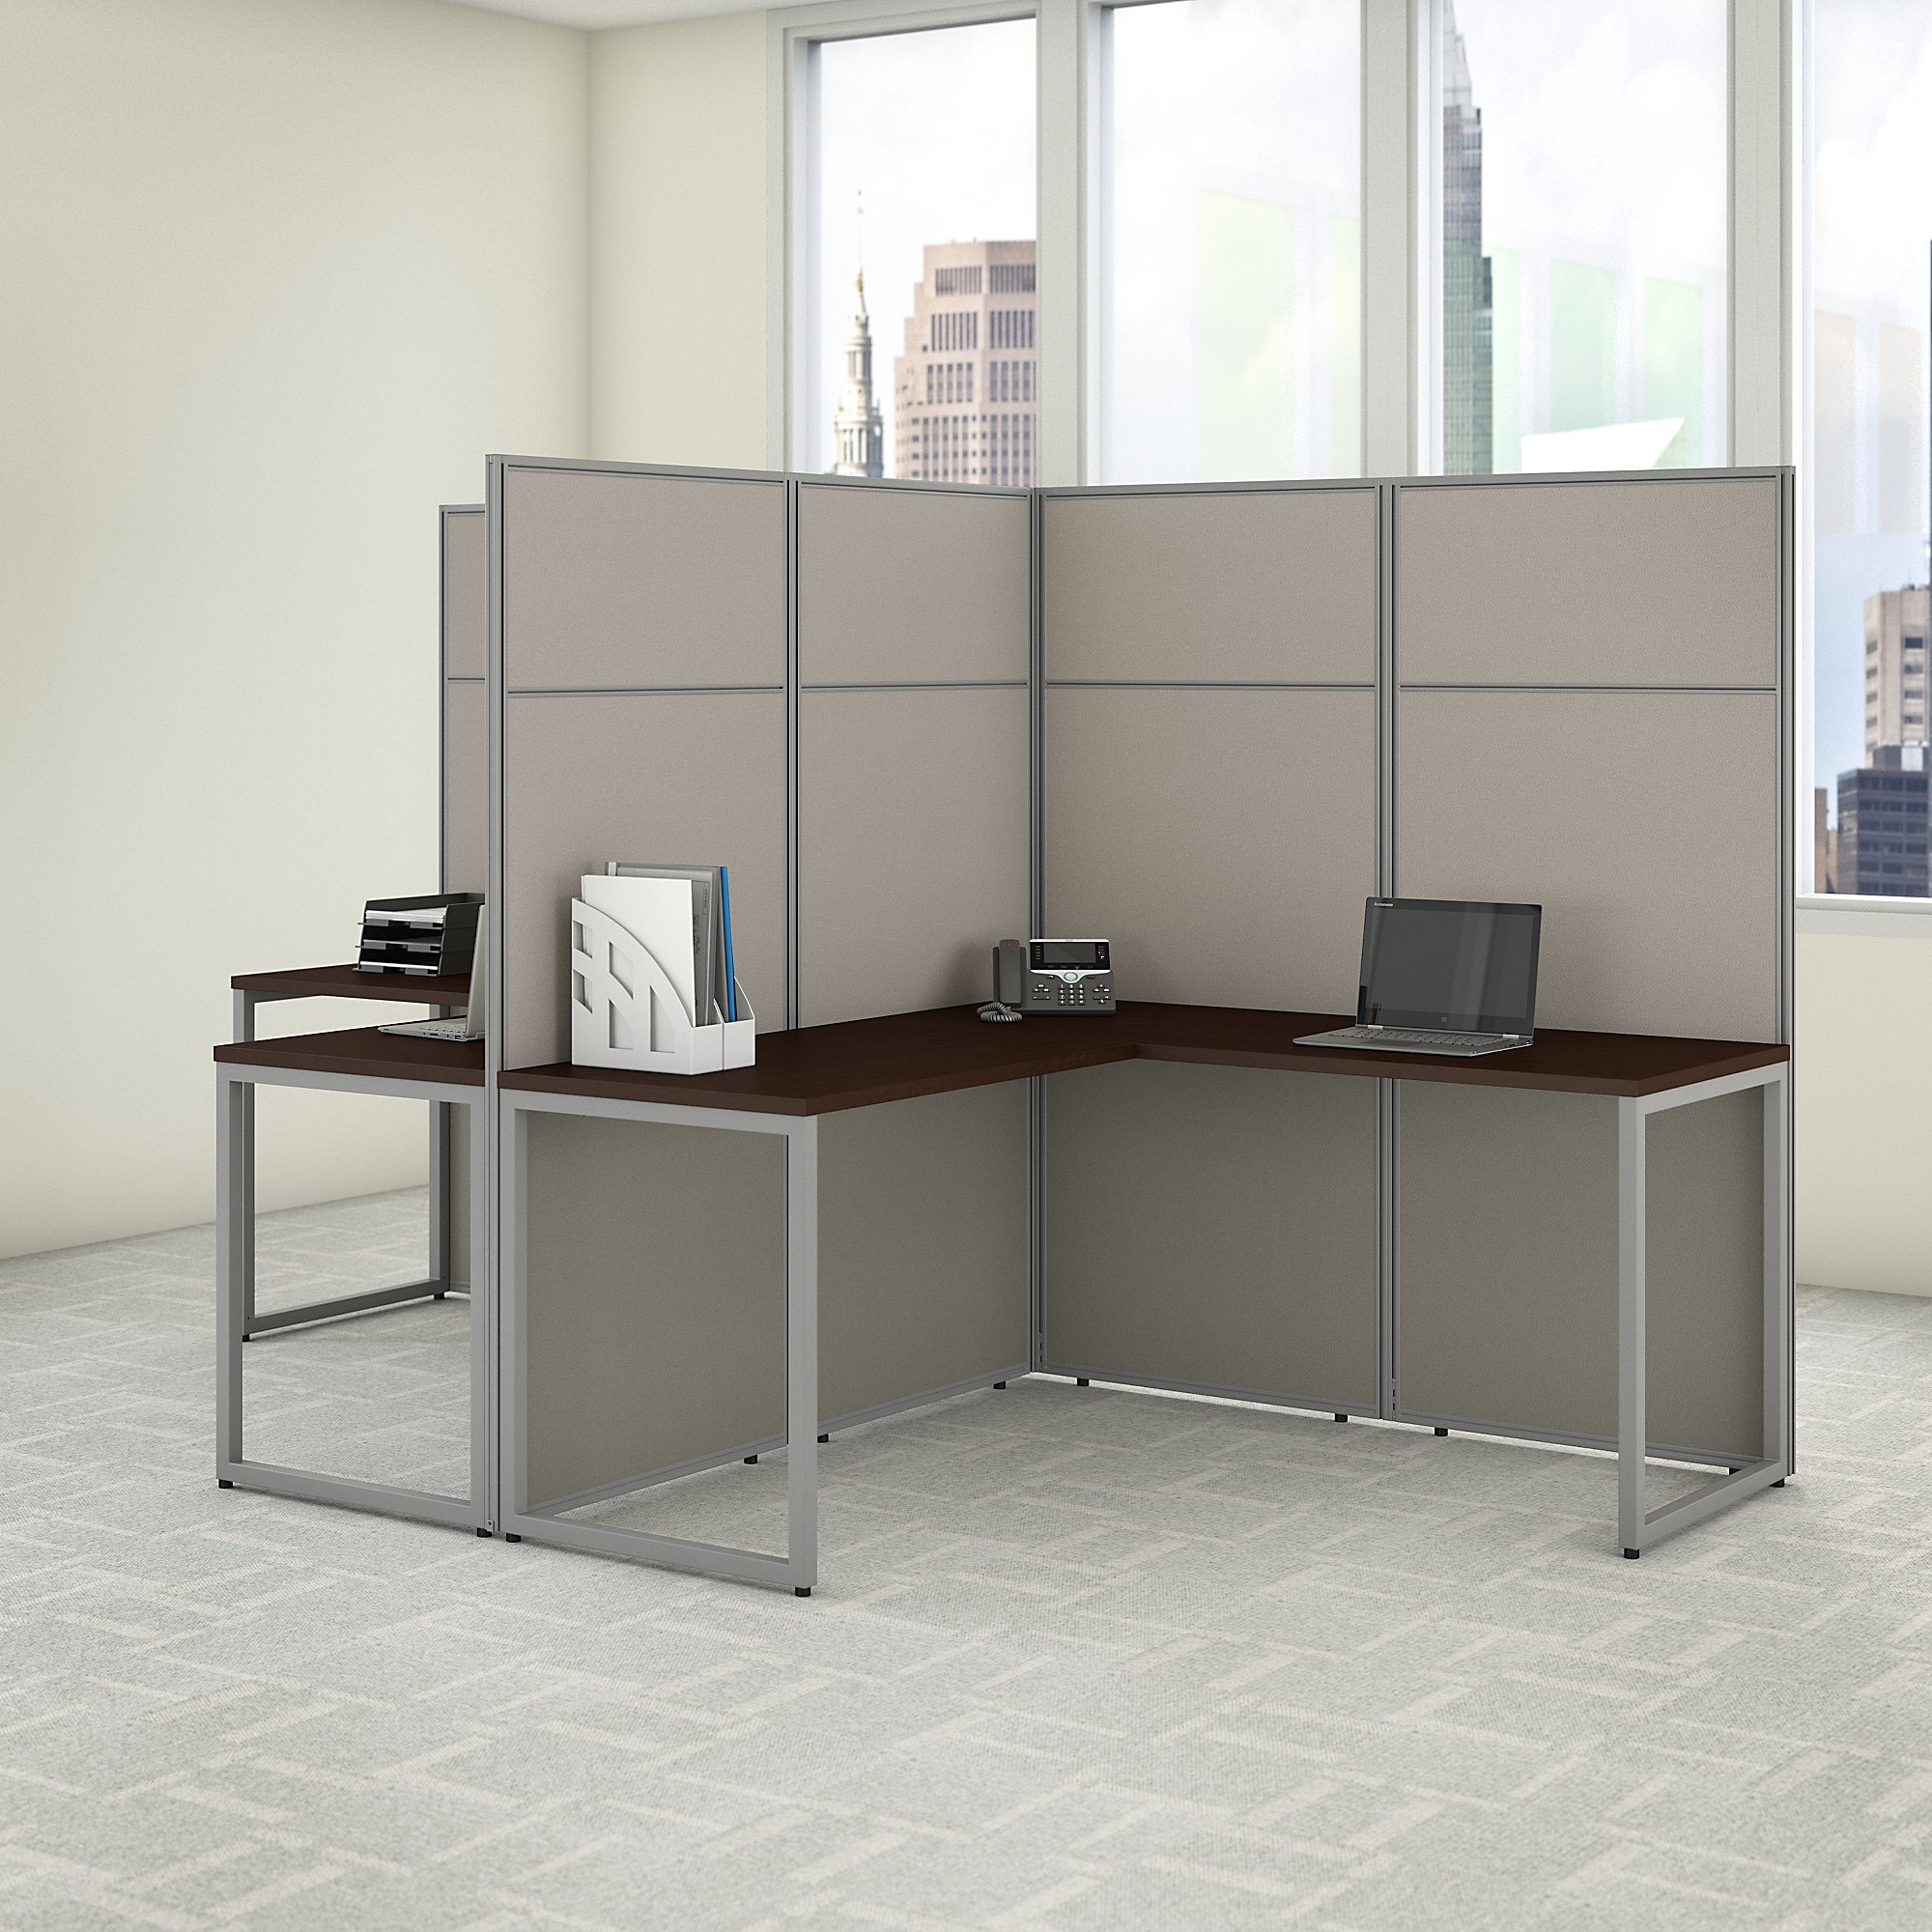 easy office 2 person l shaped cubicle workstation in mocha cherry